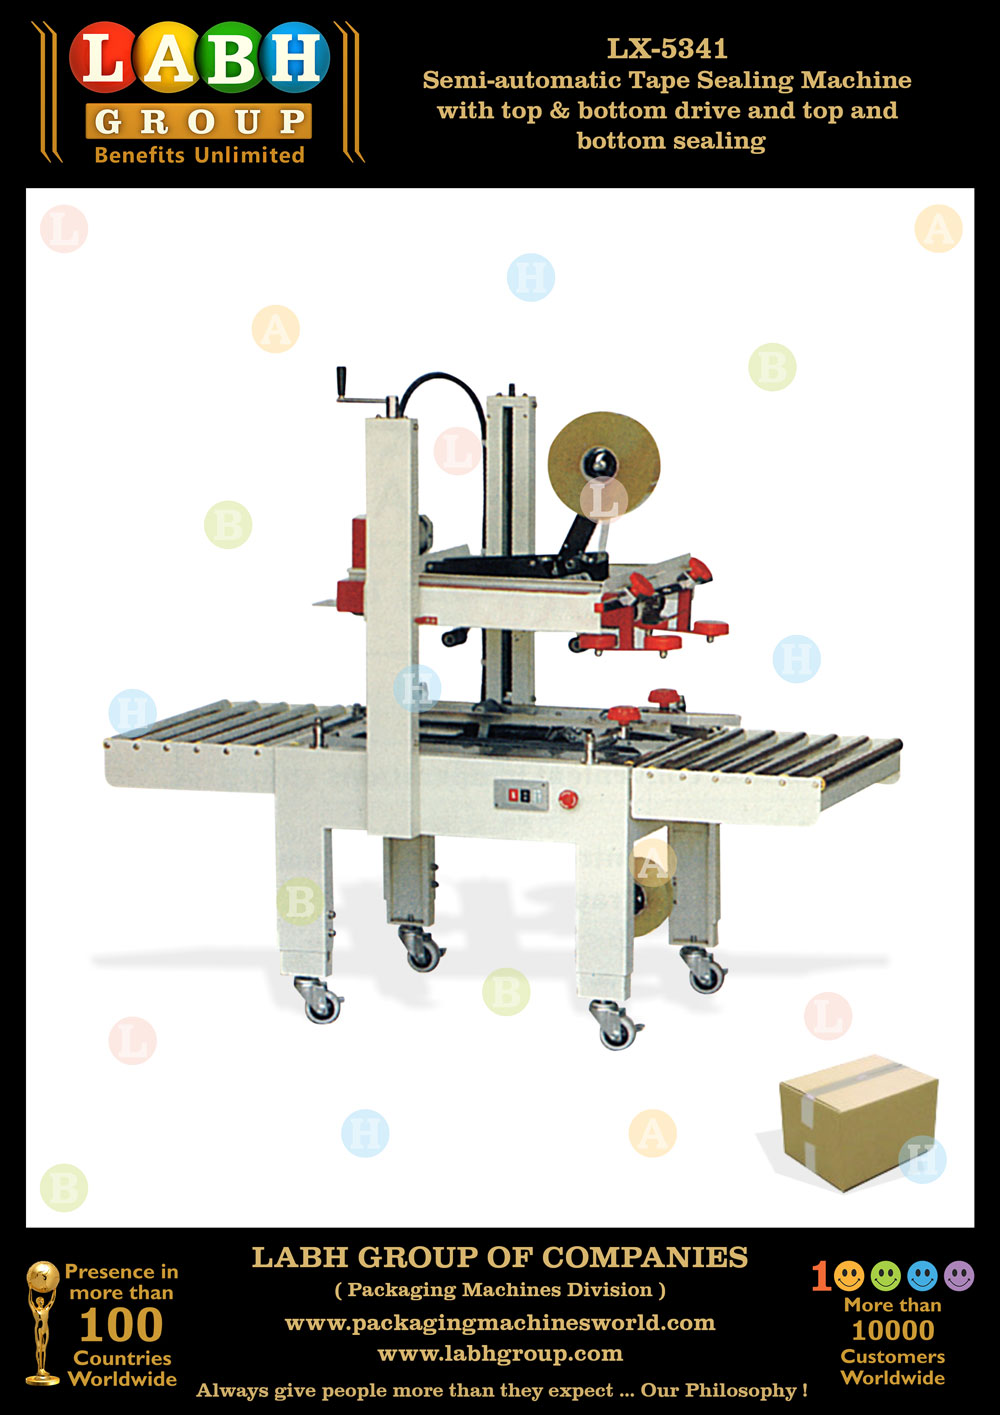 Semi-automatic Tape Sealing Machine with top & bottom drive and top and bottom sealing